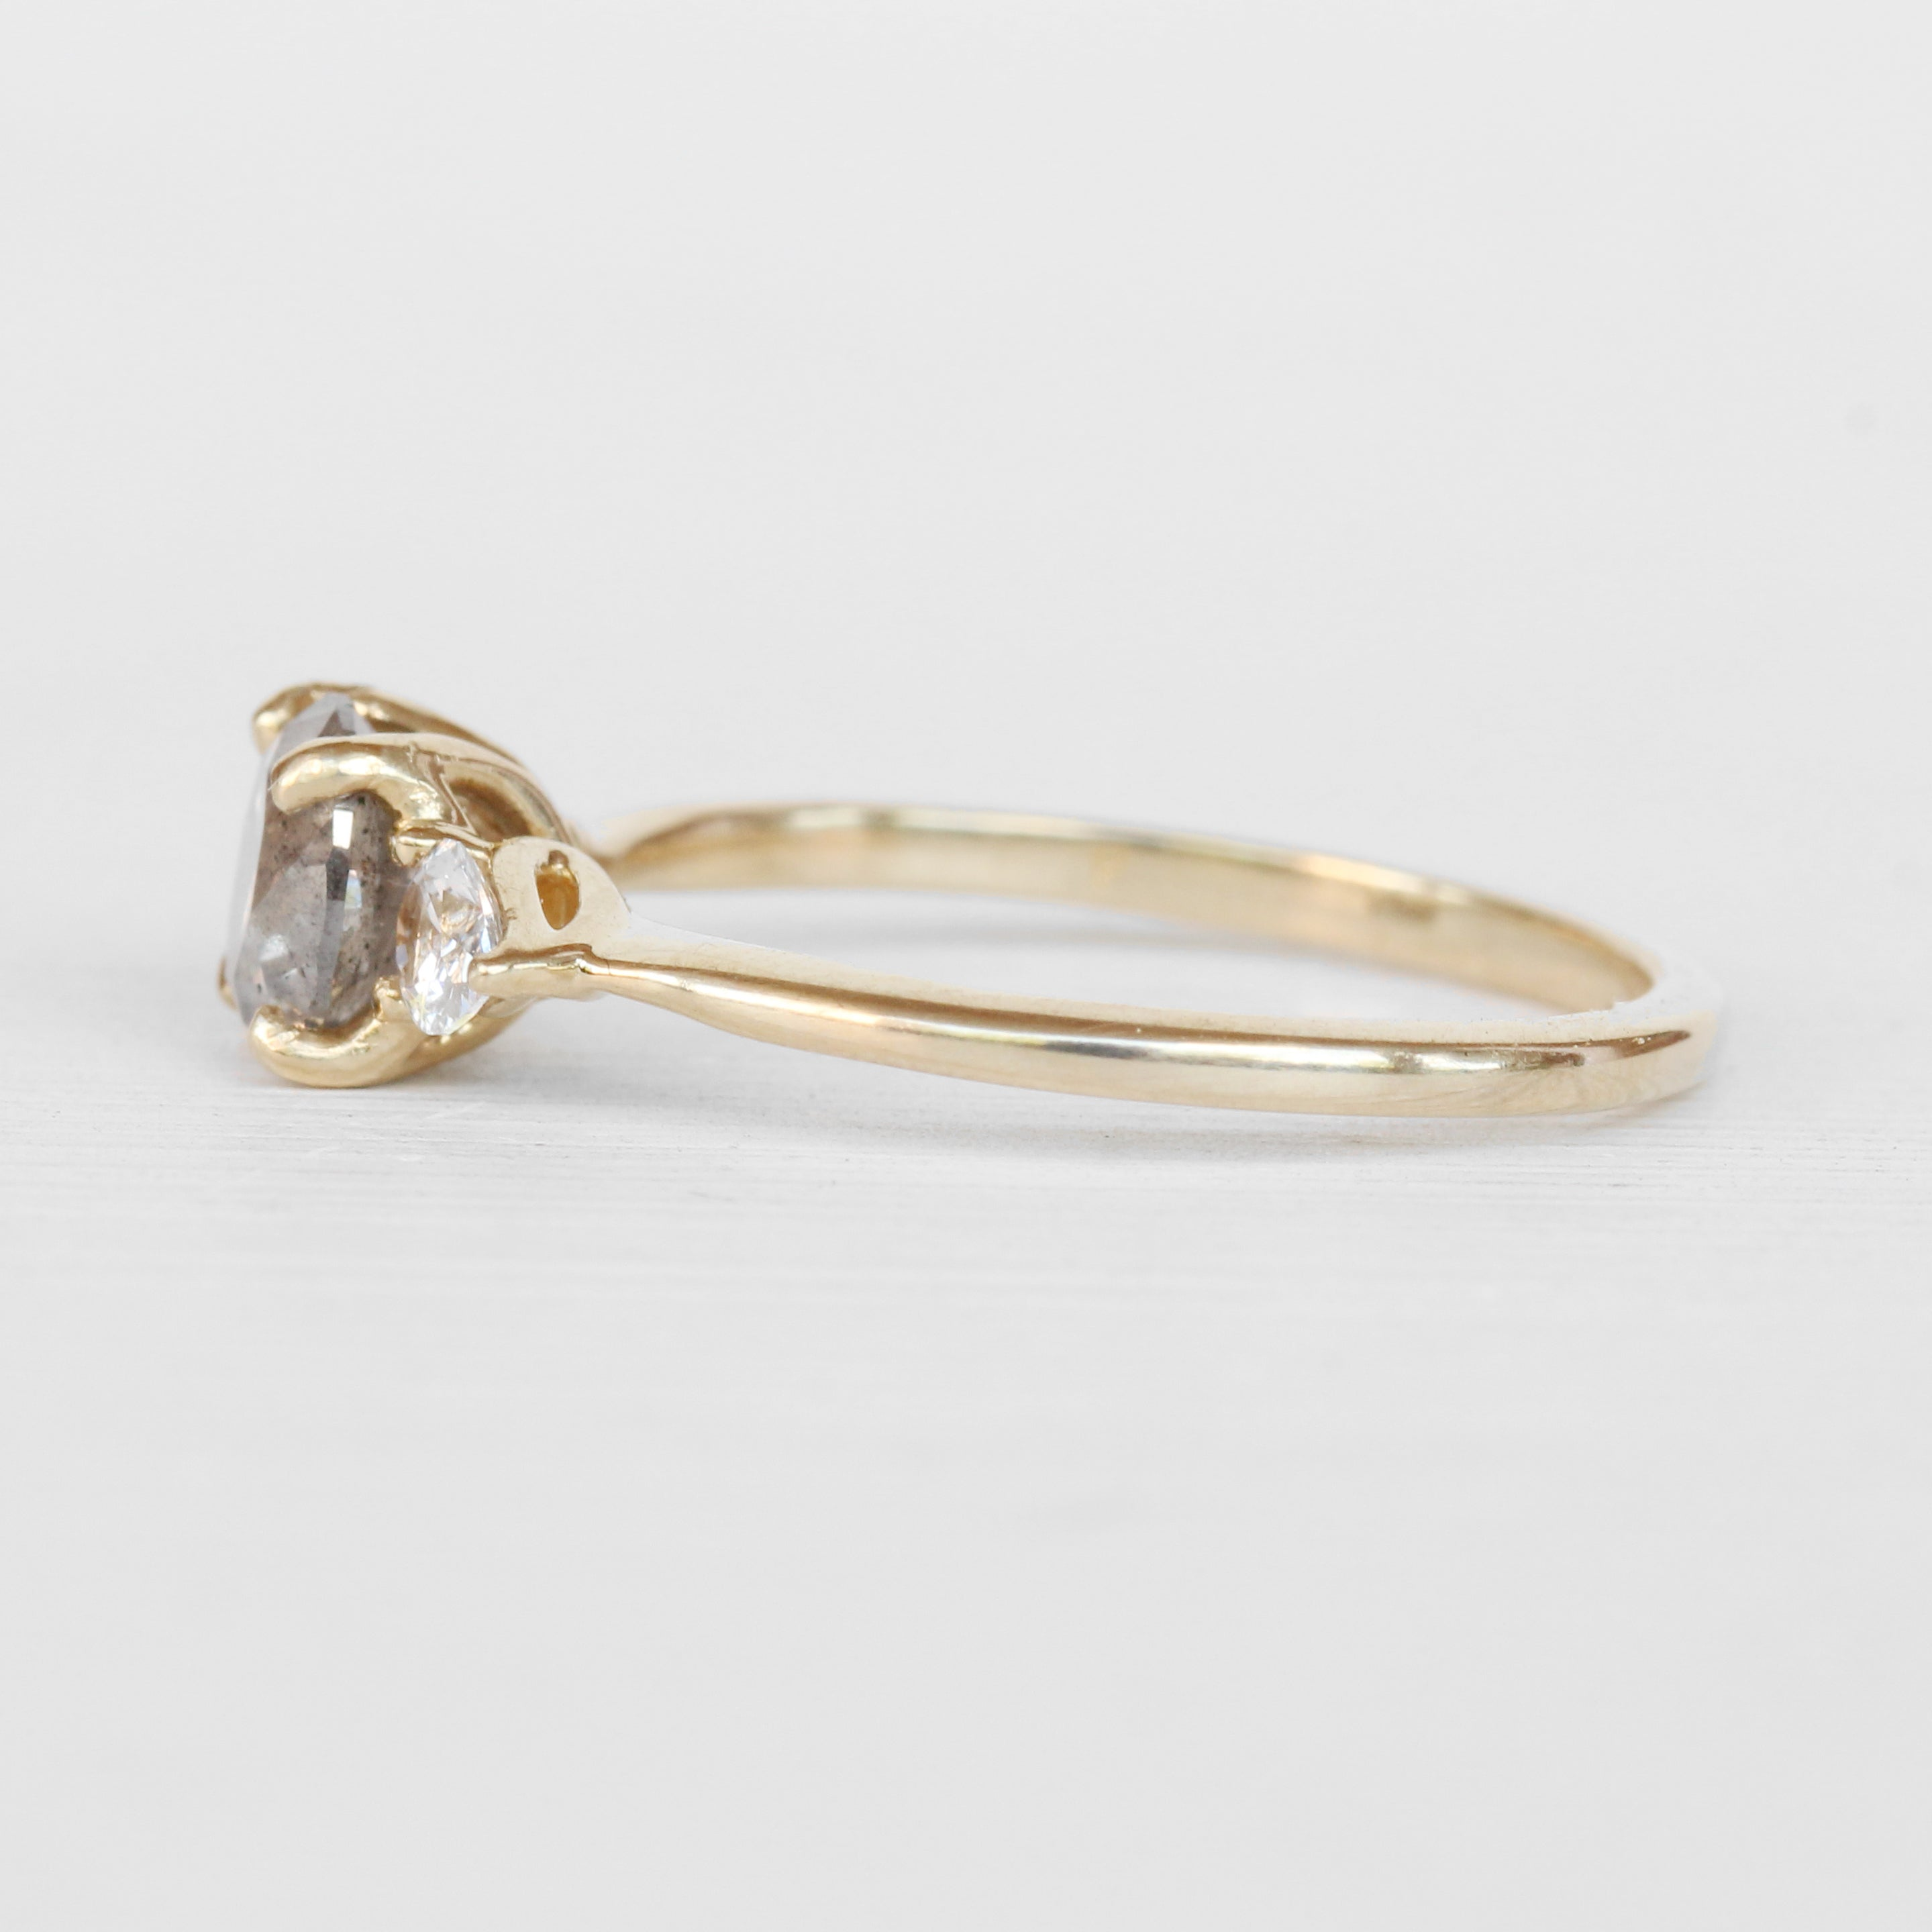 Oleander Ring with a Celestial Diamond and White Sapphires in 14k Yellow Gold - Ready to Size and Ship - Celestial Diamonds ® by Midwinter Co.